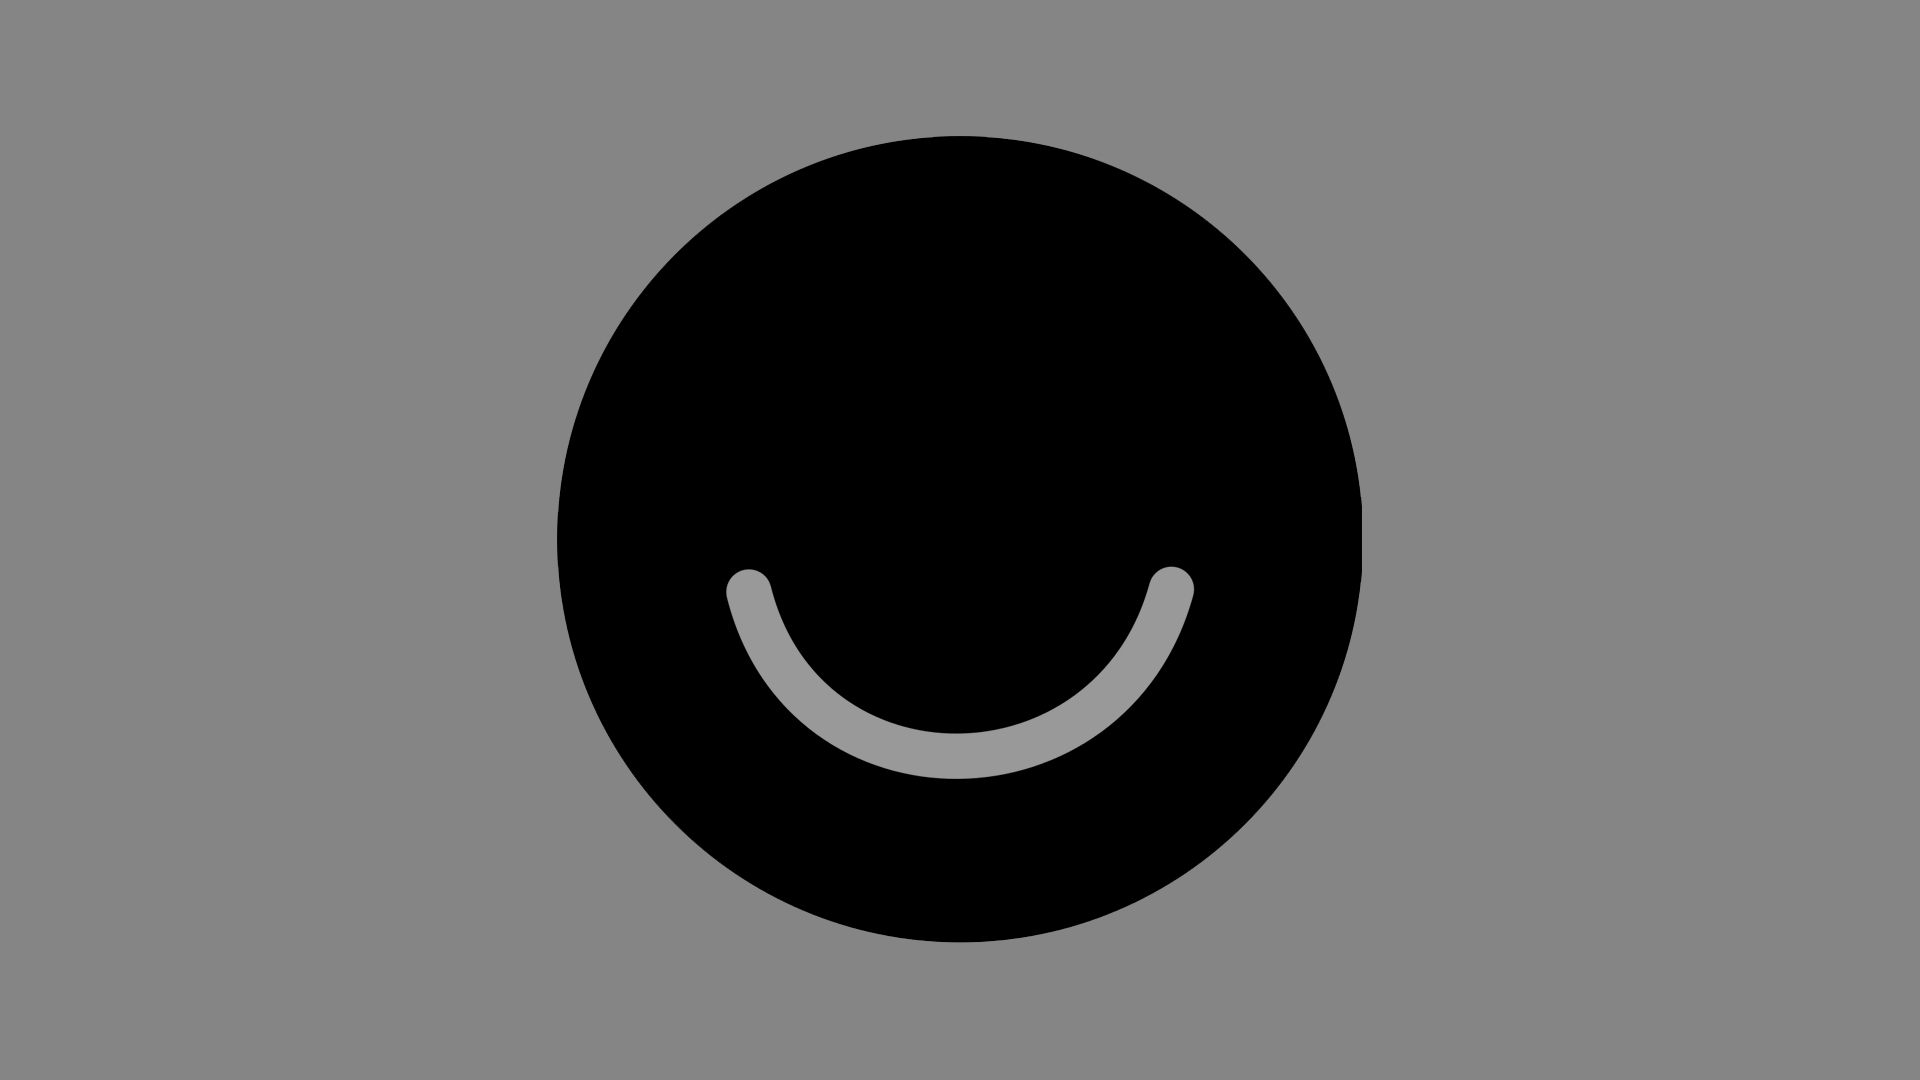 Ello Has the Potential to be a Great Social Network